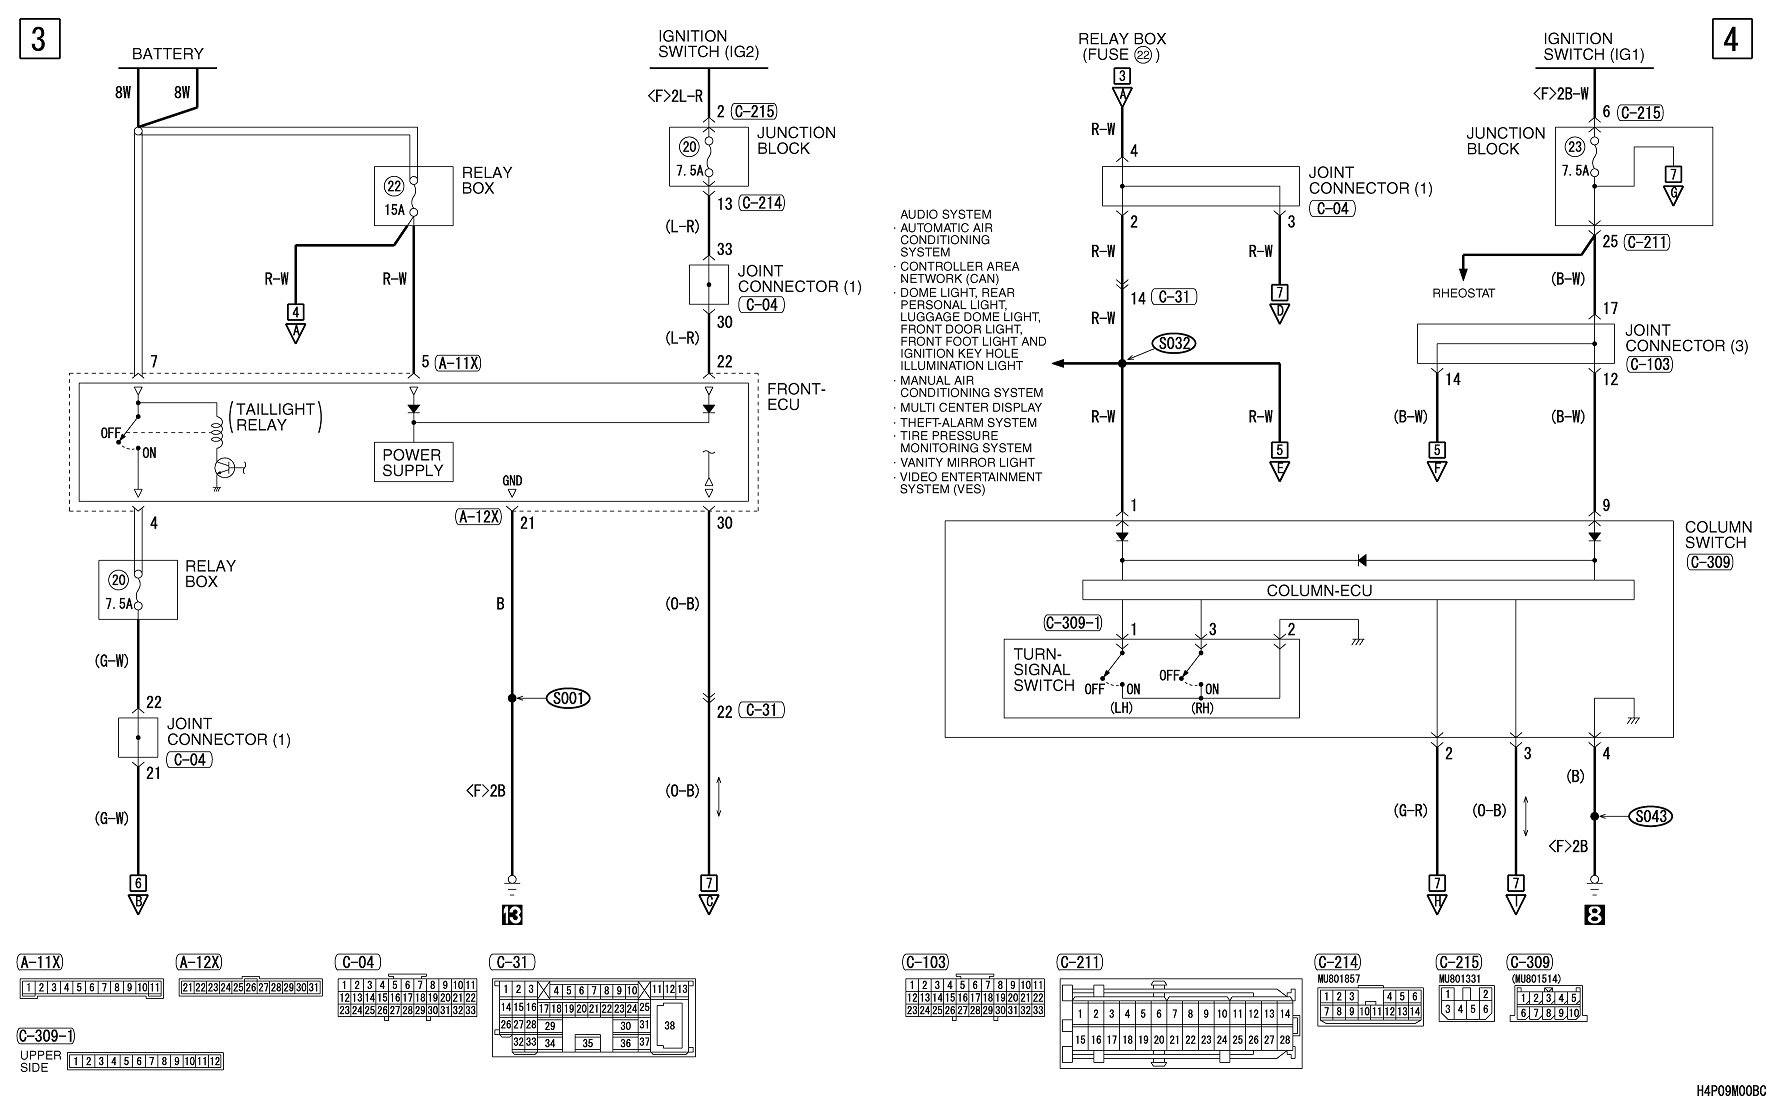 fuse box diagram for 2004 lesabre wiring diagrams i need wiring diagram for mitsubishi endeavor 2004 need copy of fuse box diagram 2001 mitsubishi galant wiring diagrams